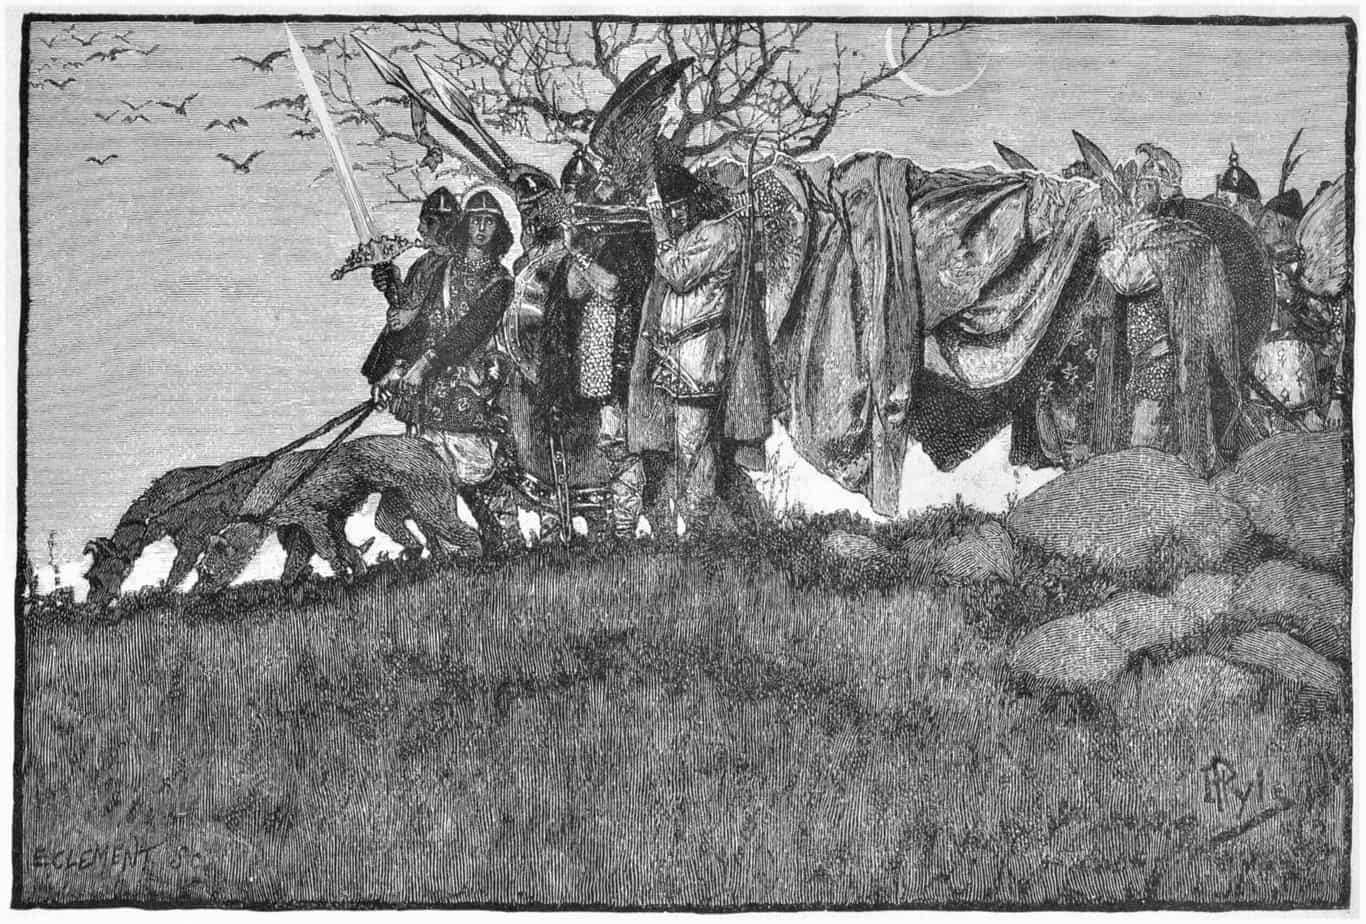 The Story of Siegfried illustrated by Howard Pyle (American, 1853-1911)